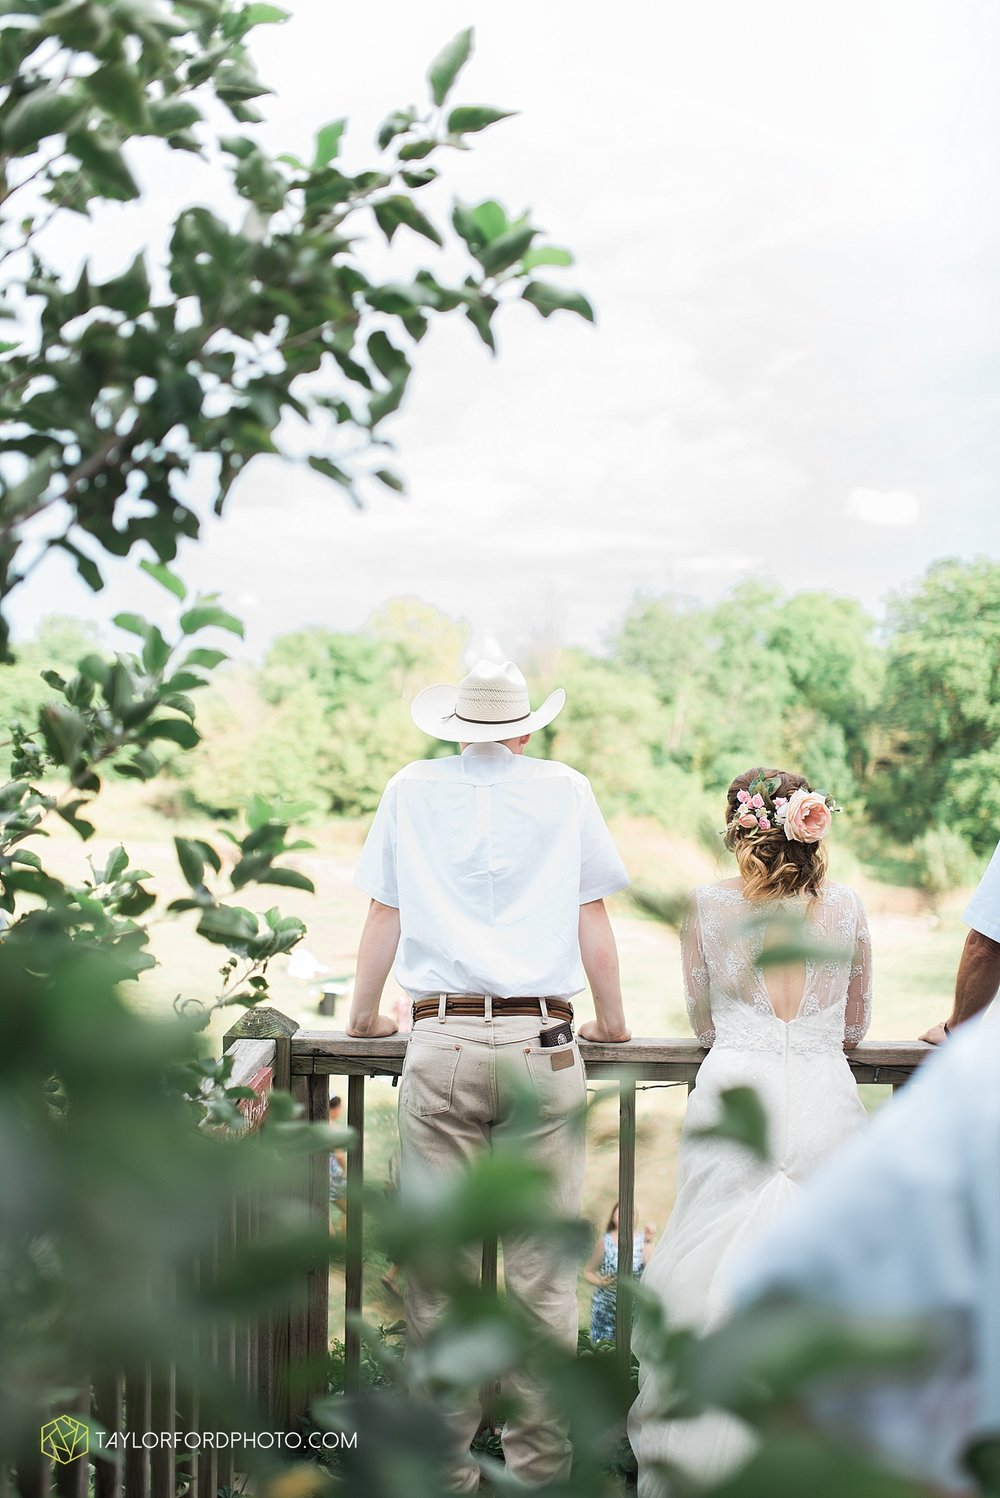 fort_wayne_indiana_wedding_photographer_taylor_ford_marian_hills_farm_0312.jpg